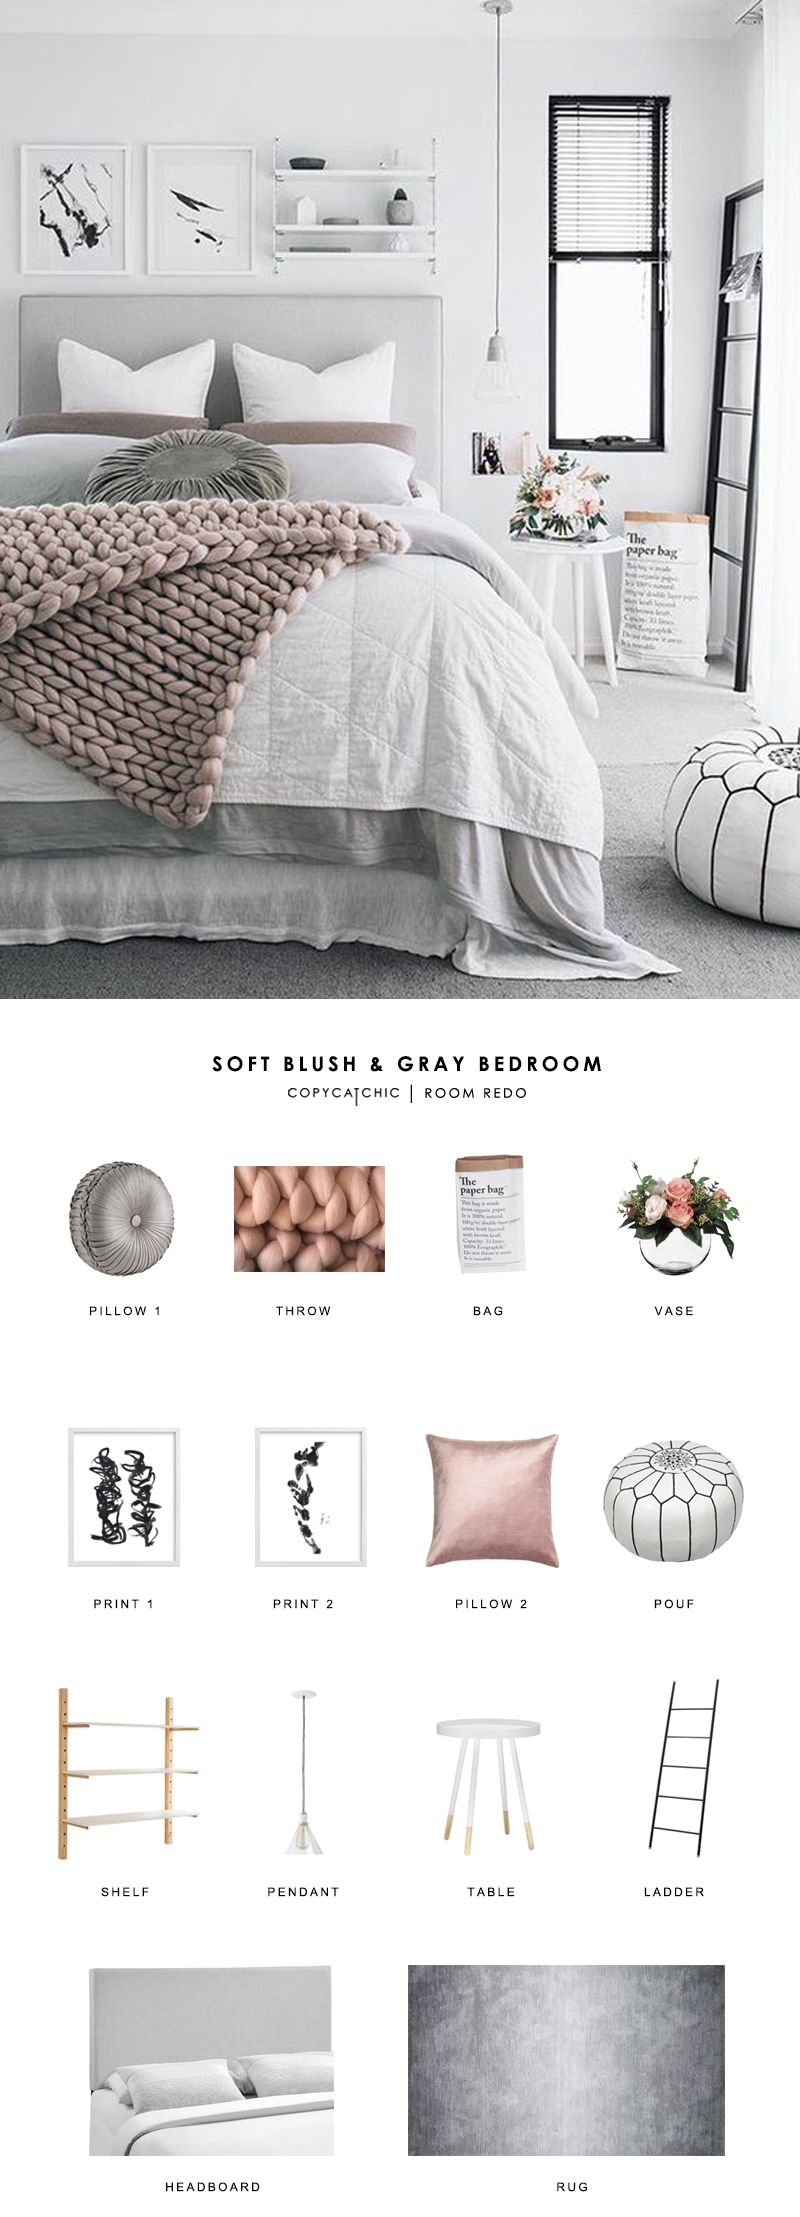 Scandinavian Bedroom Look For Less is part of Gray bedroom Ideas - This soft, Scandinavian bedroom design by Oh Eight Oh Nine gets recreated for less by Copy Cat Chic  Luxe living for less